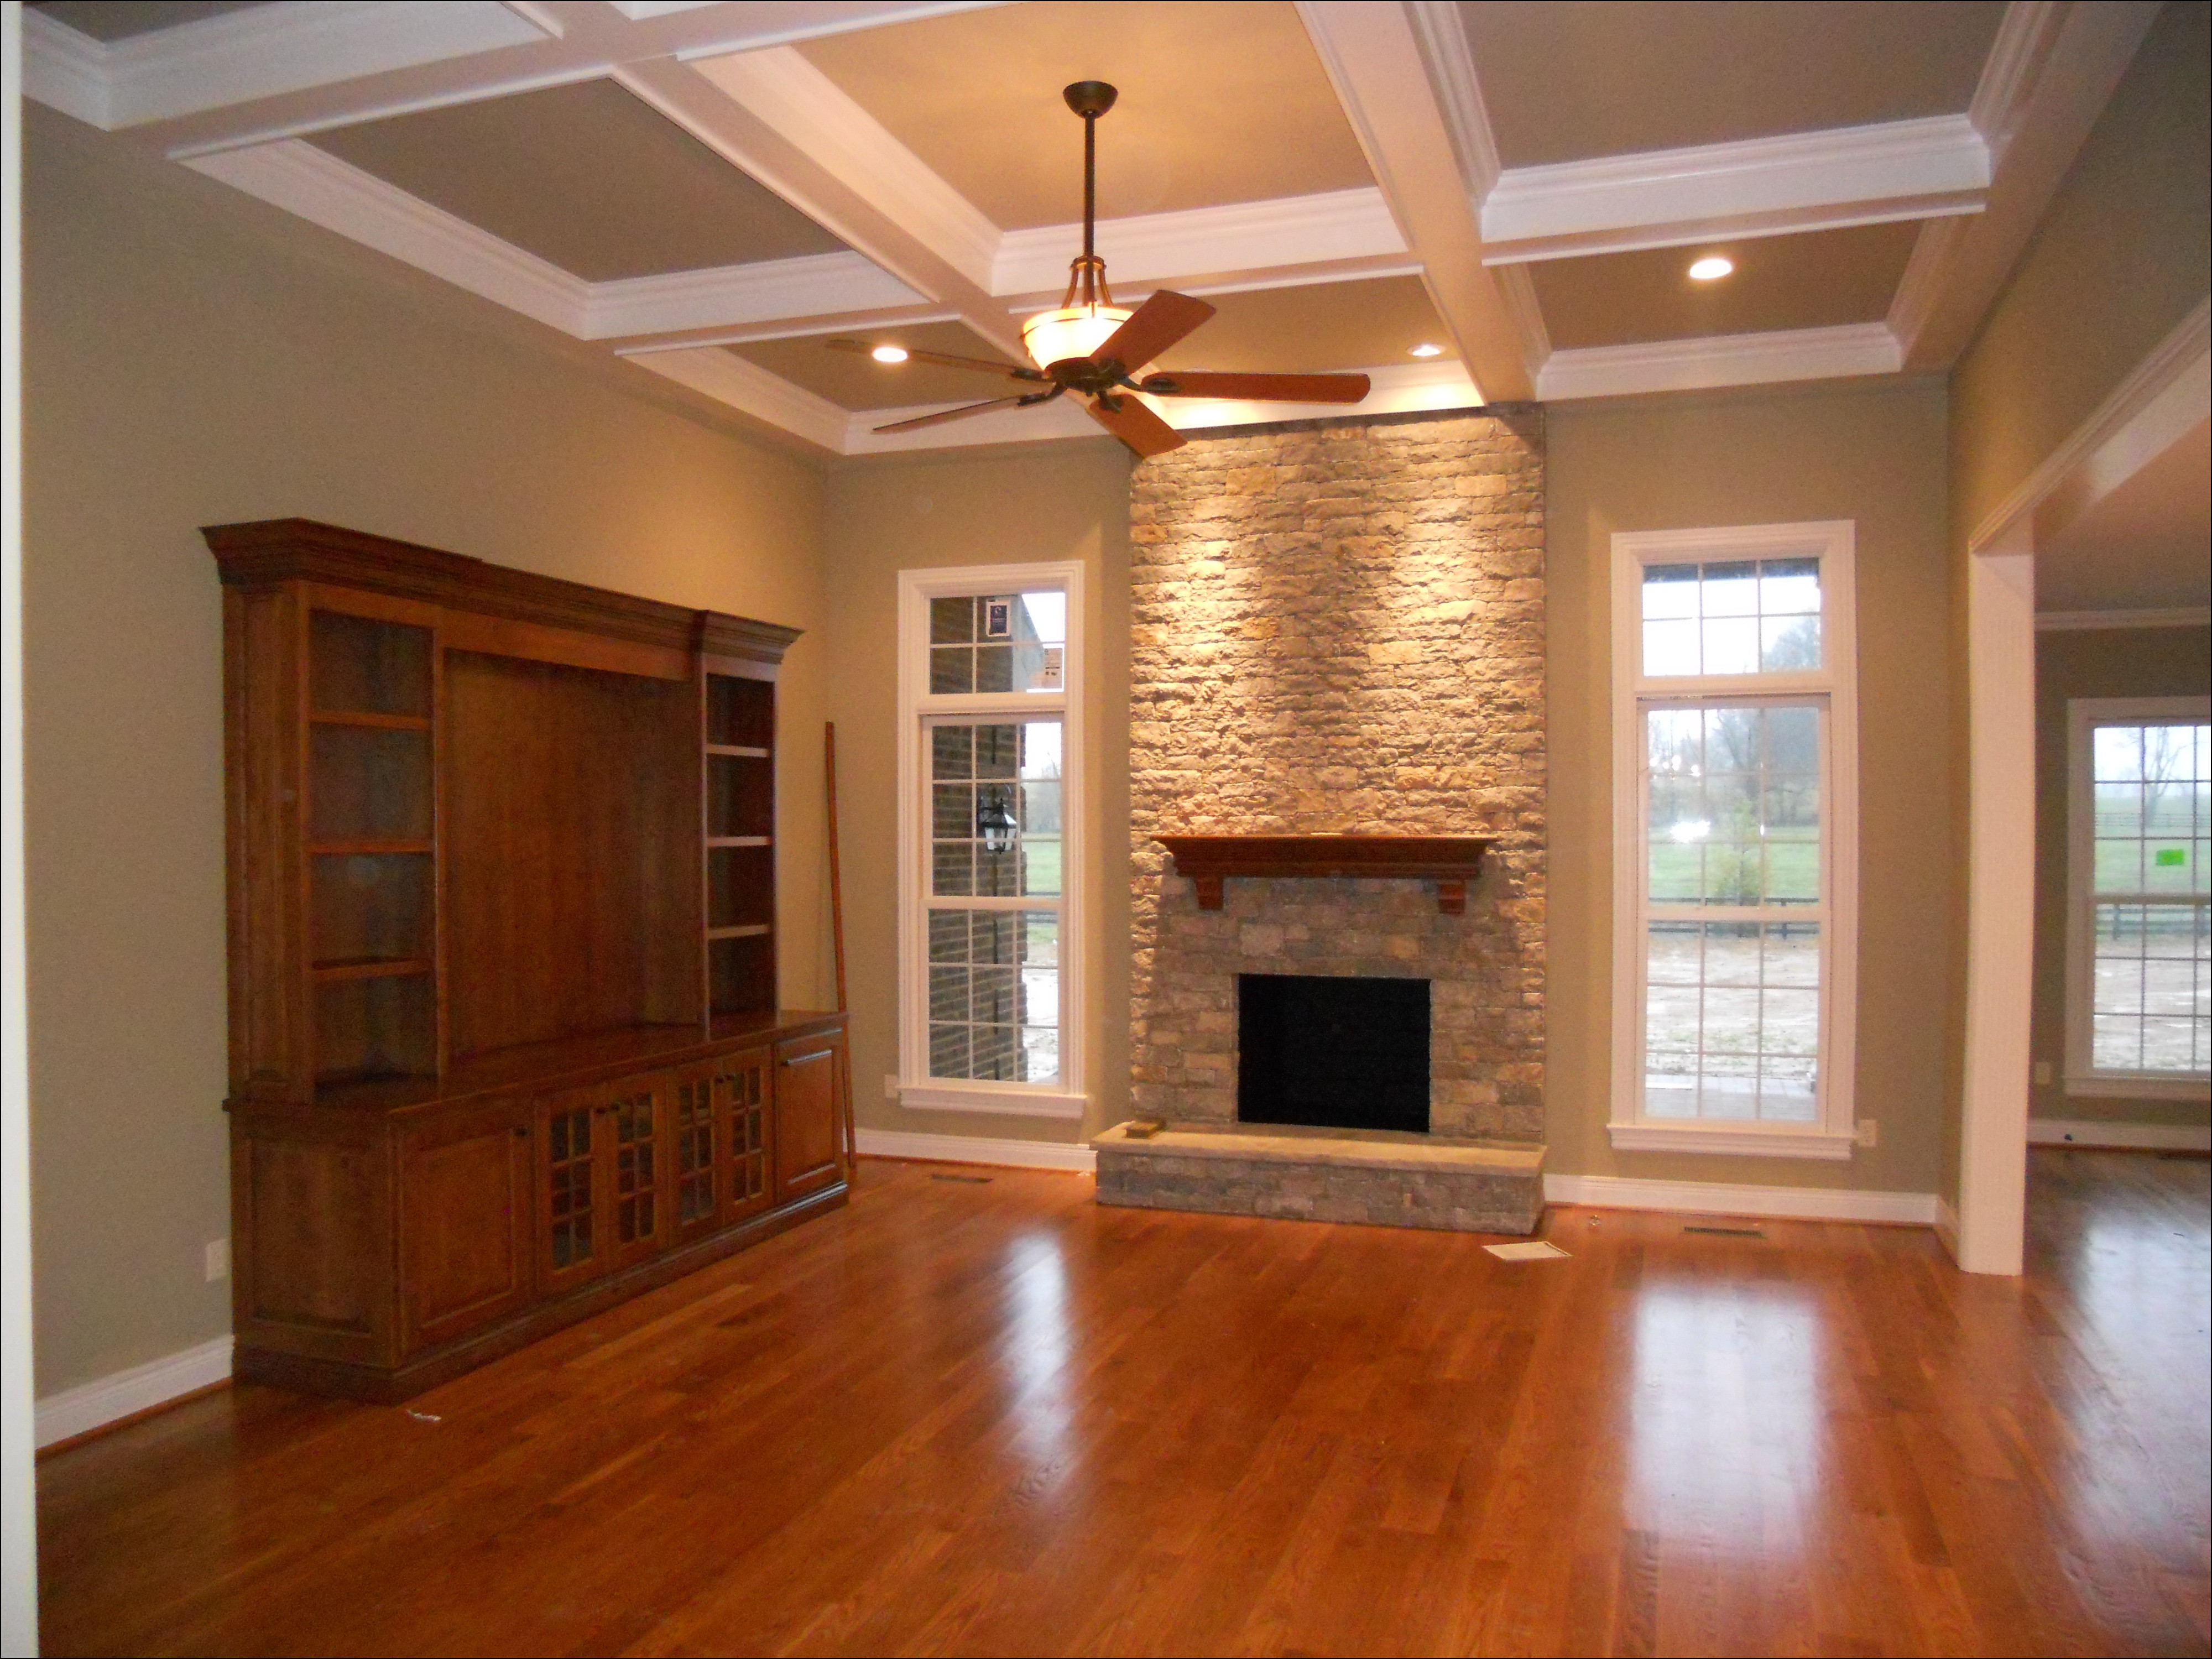 14 Fabulous How Do You Install Engineered Hardwood Floors On Concrete 2021 free download how do you install engineered hardwood floors on concrete of best place flooring ideas for best place to buy engineered hardwood flooring stock floor best hardwood floors for concrete slabbe